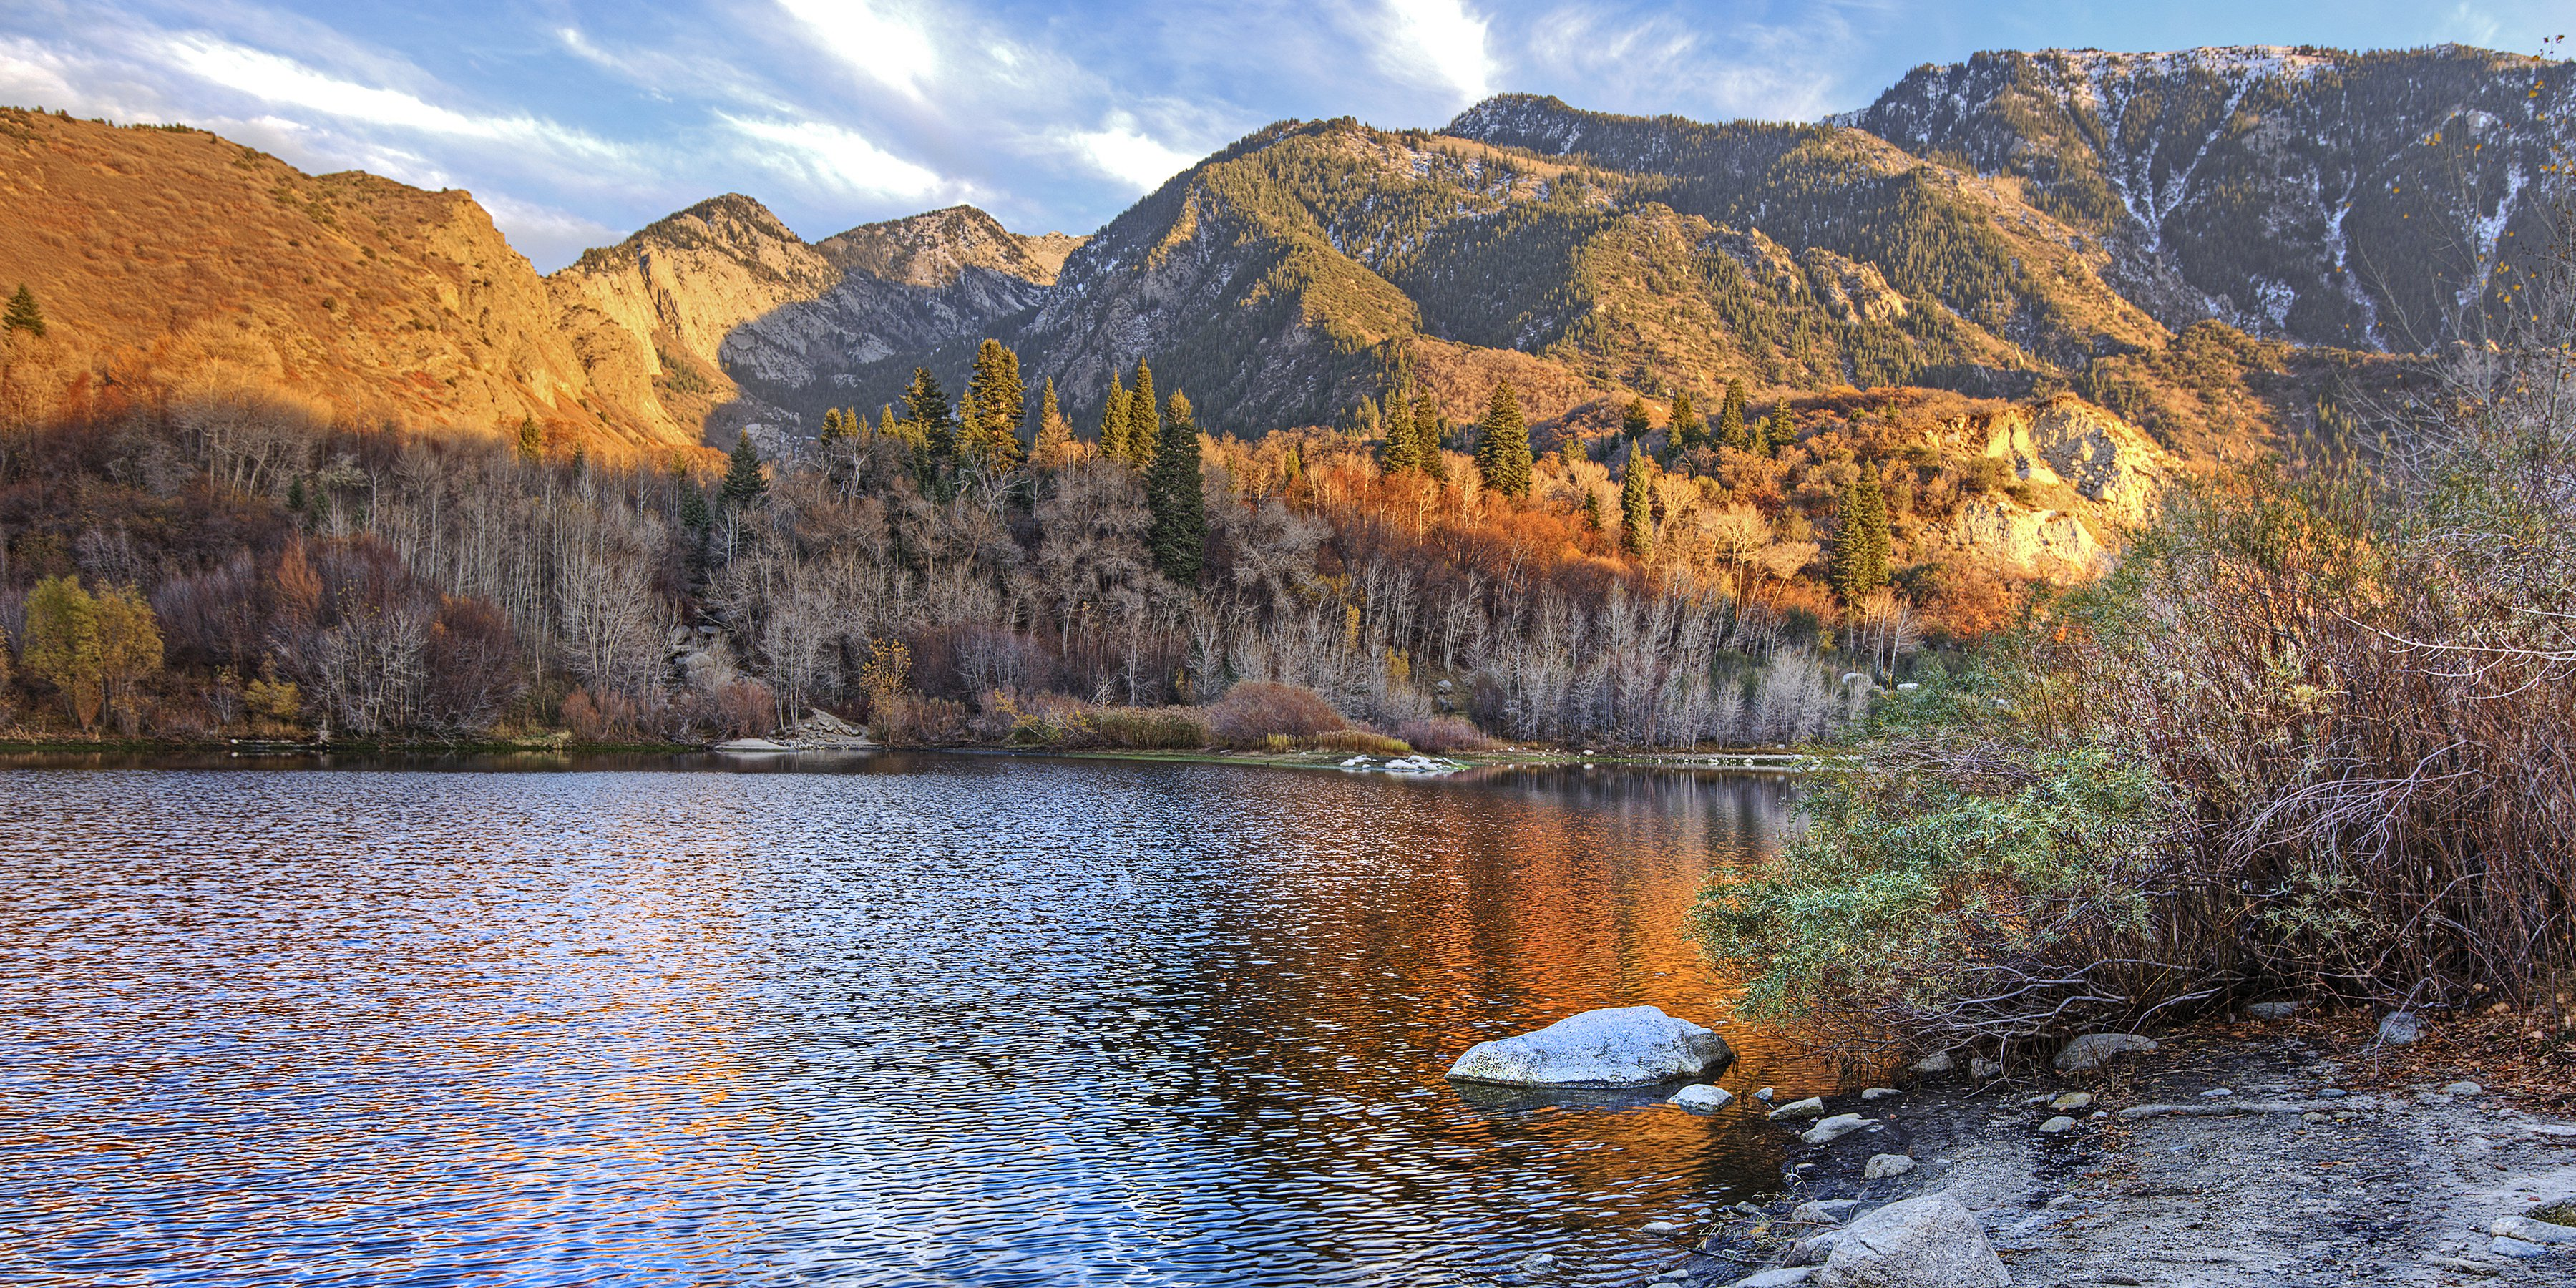 bells canyon trail hike - uinta-wasatch-cache national forest